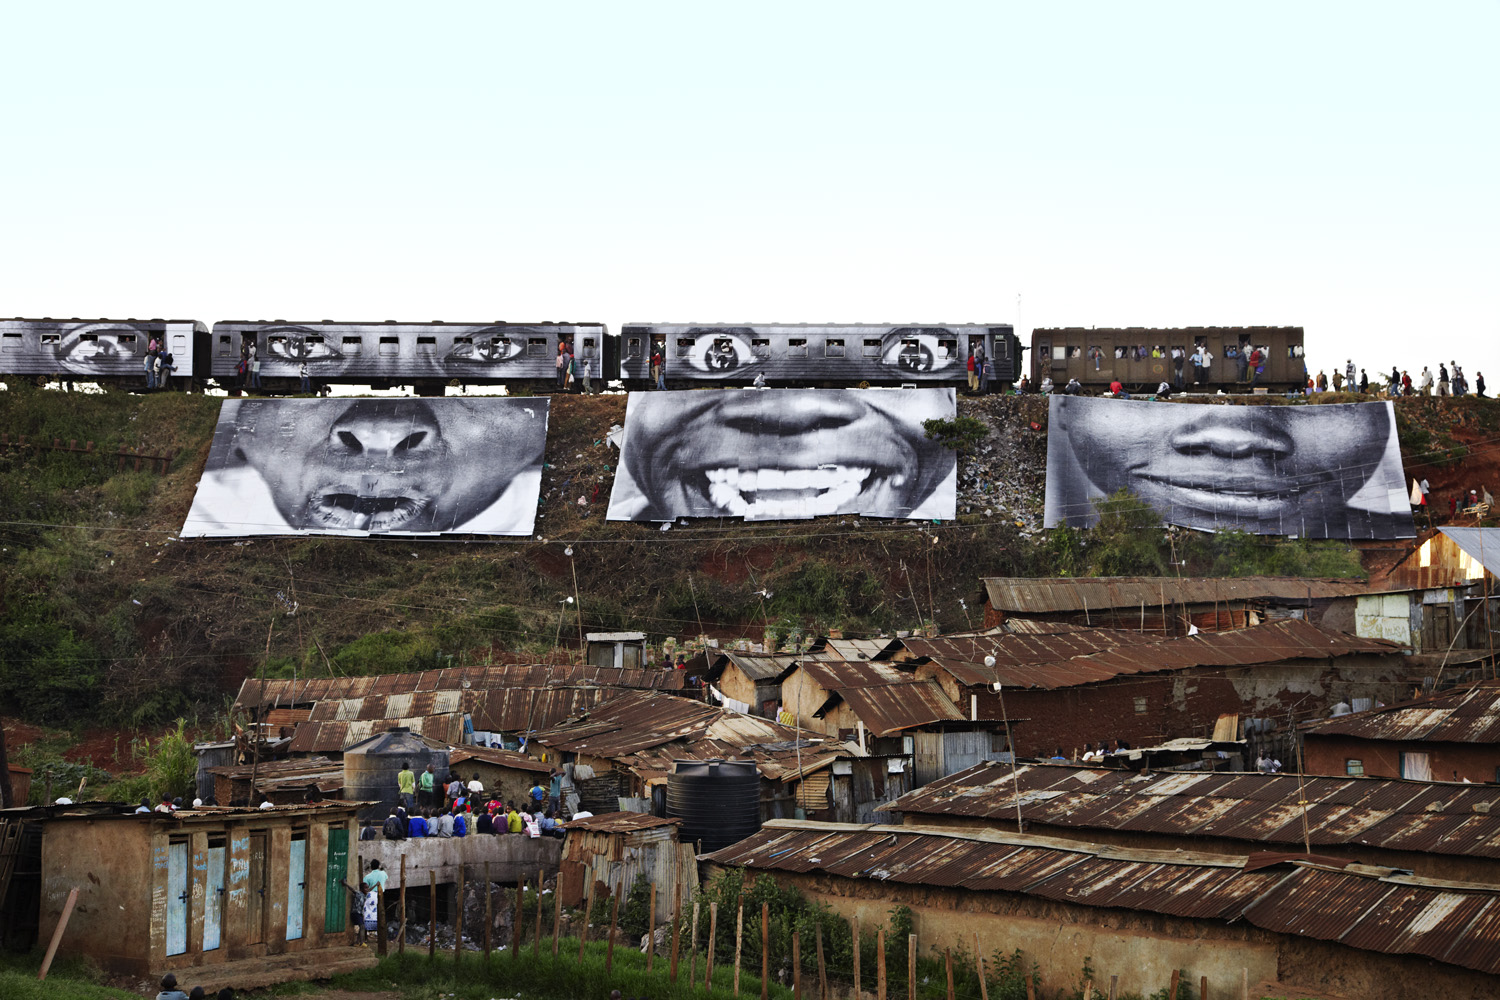 28 Millimètres : Women Are Heroes, Action in Kibera, Slum, Train Passage 6, Kenya, 2009, 107 x 160 cm.